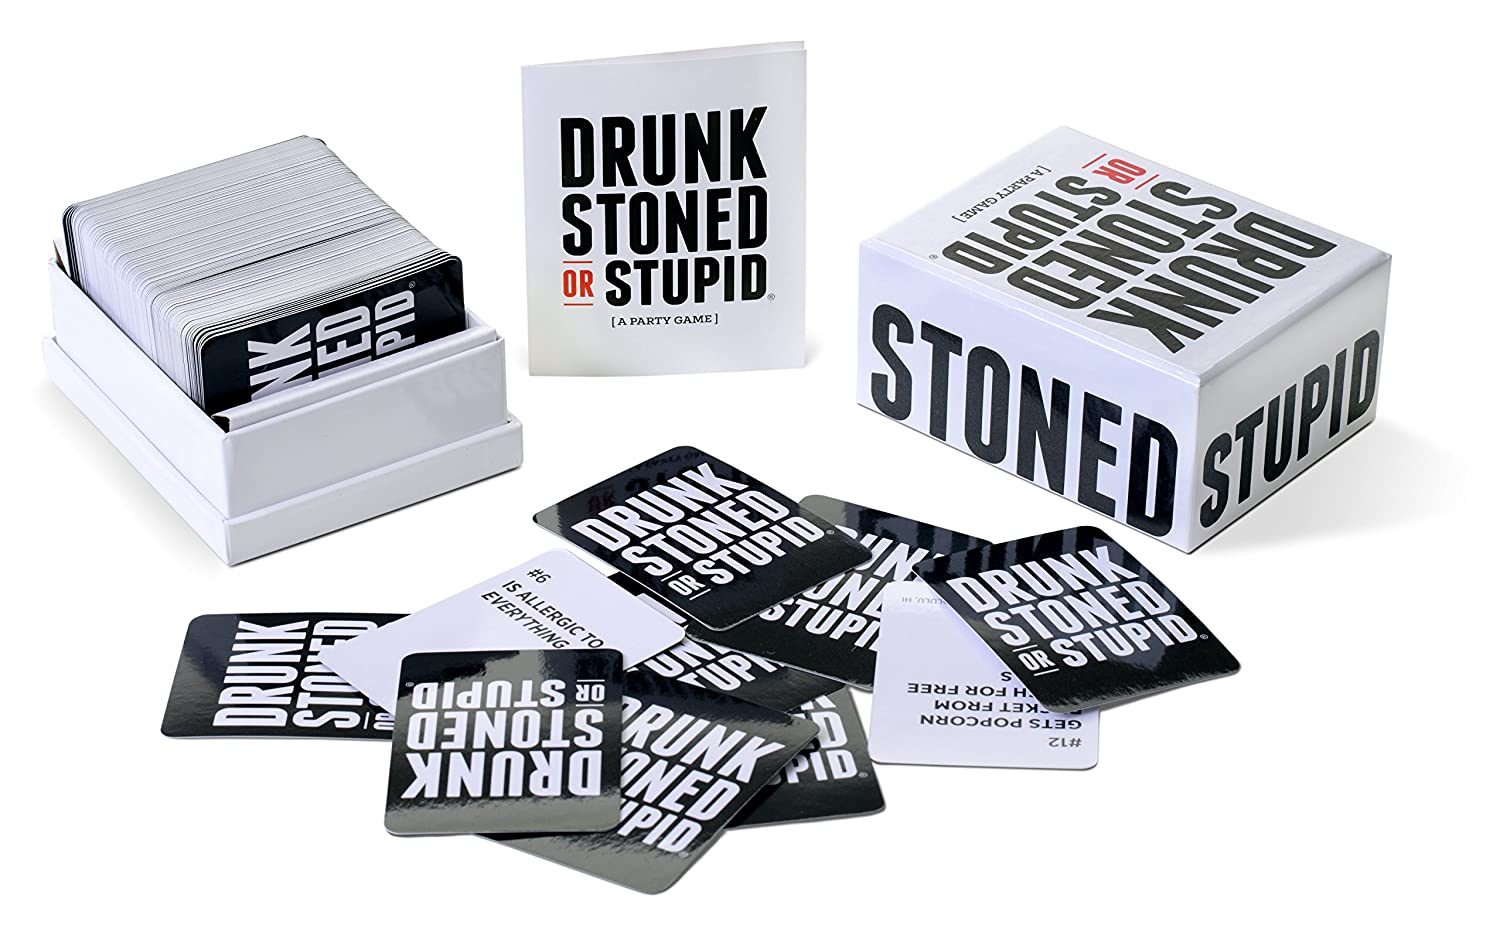 Drunk Stoned or Stupid: A New Party Game